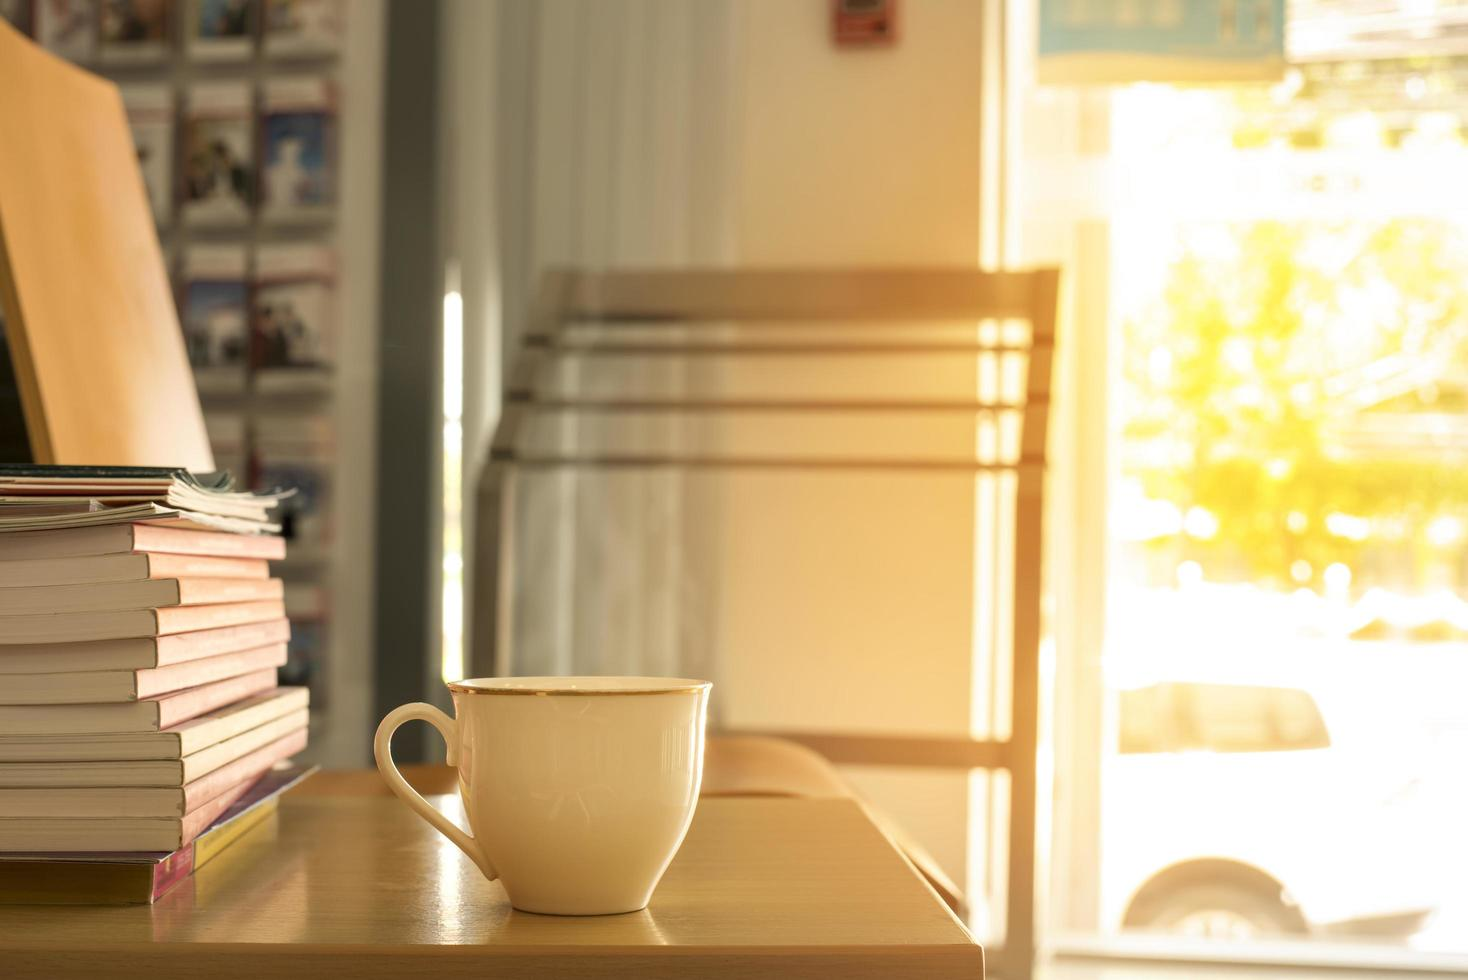 Cup of coffee in morning light photo